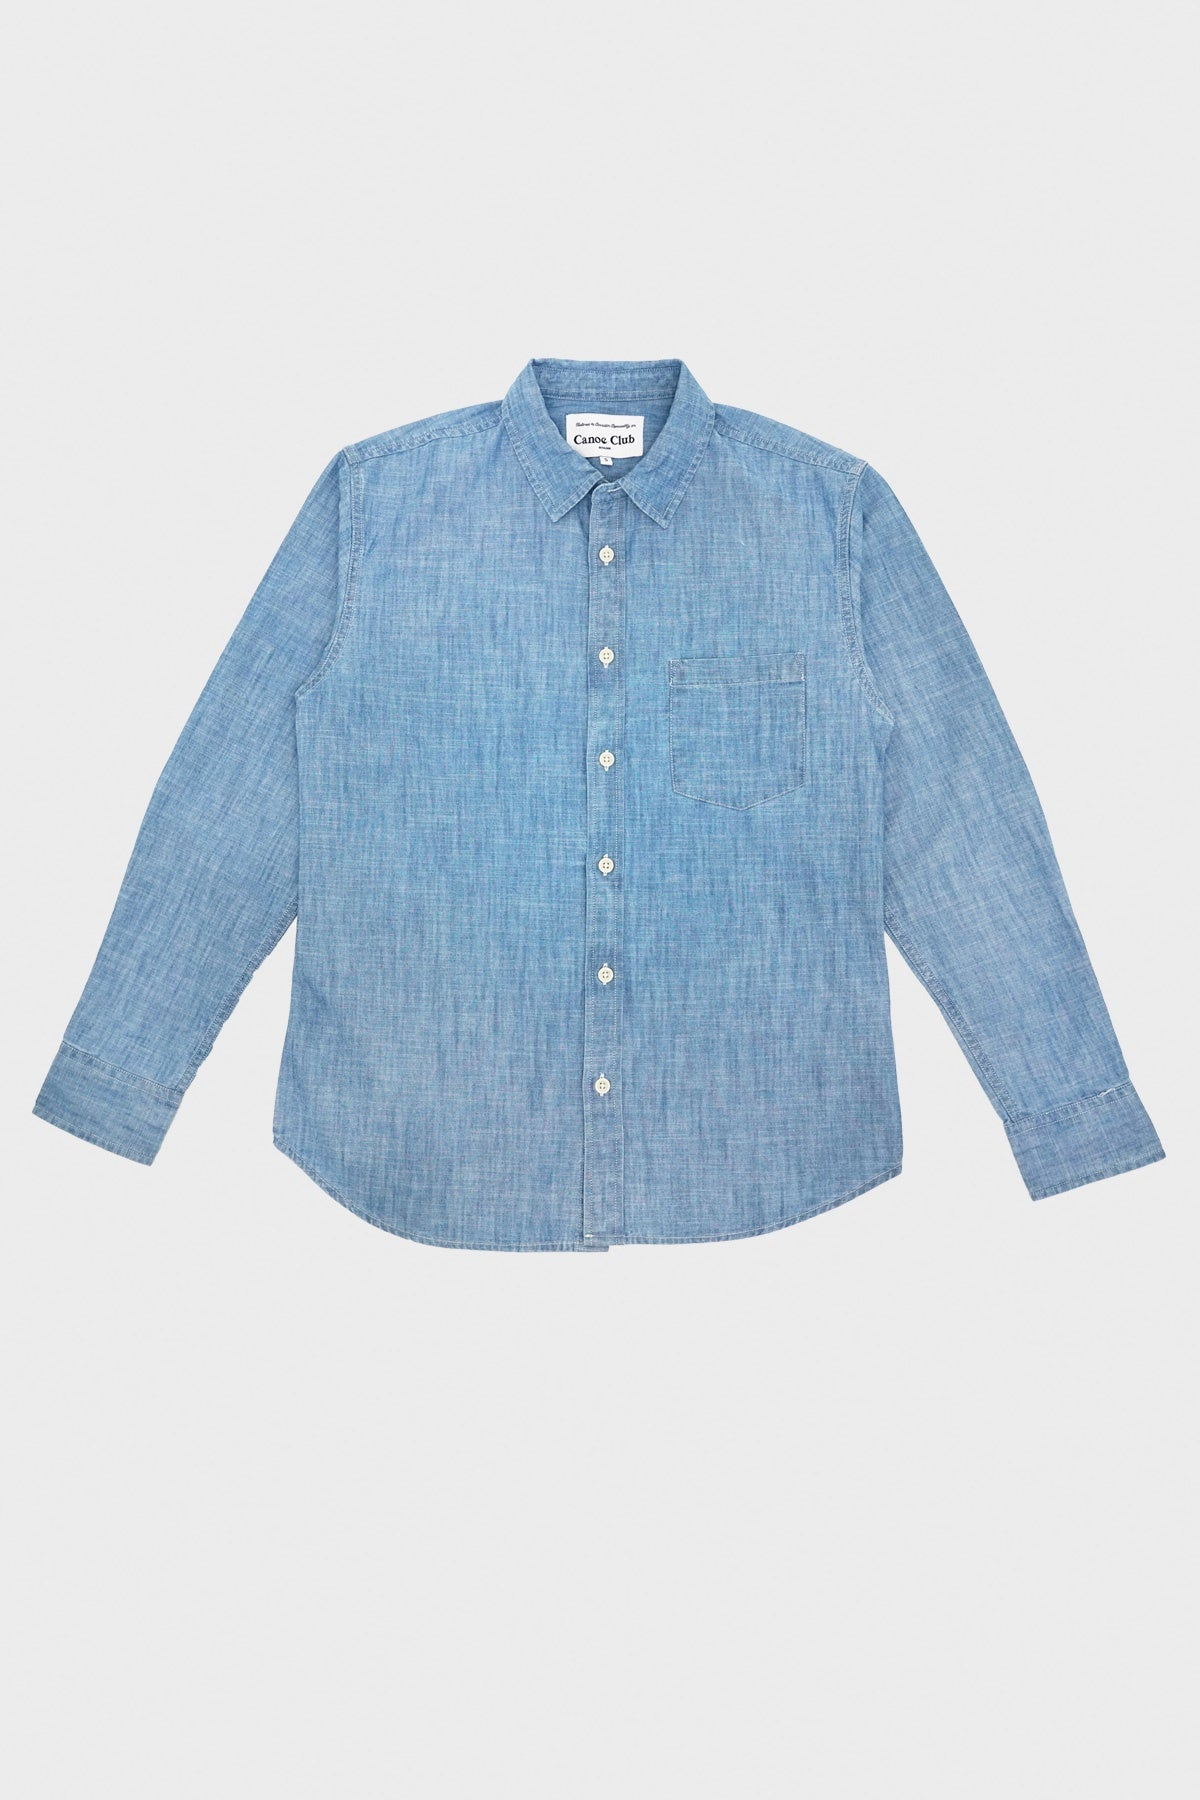 corridor clothing nyc Canoe Club Chambray - Blue